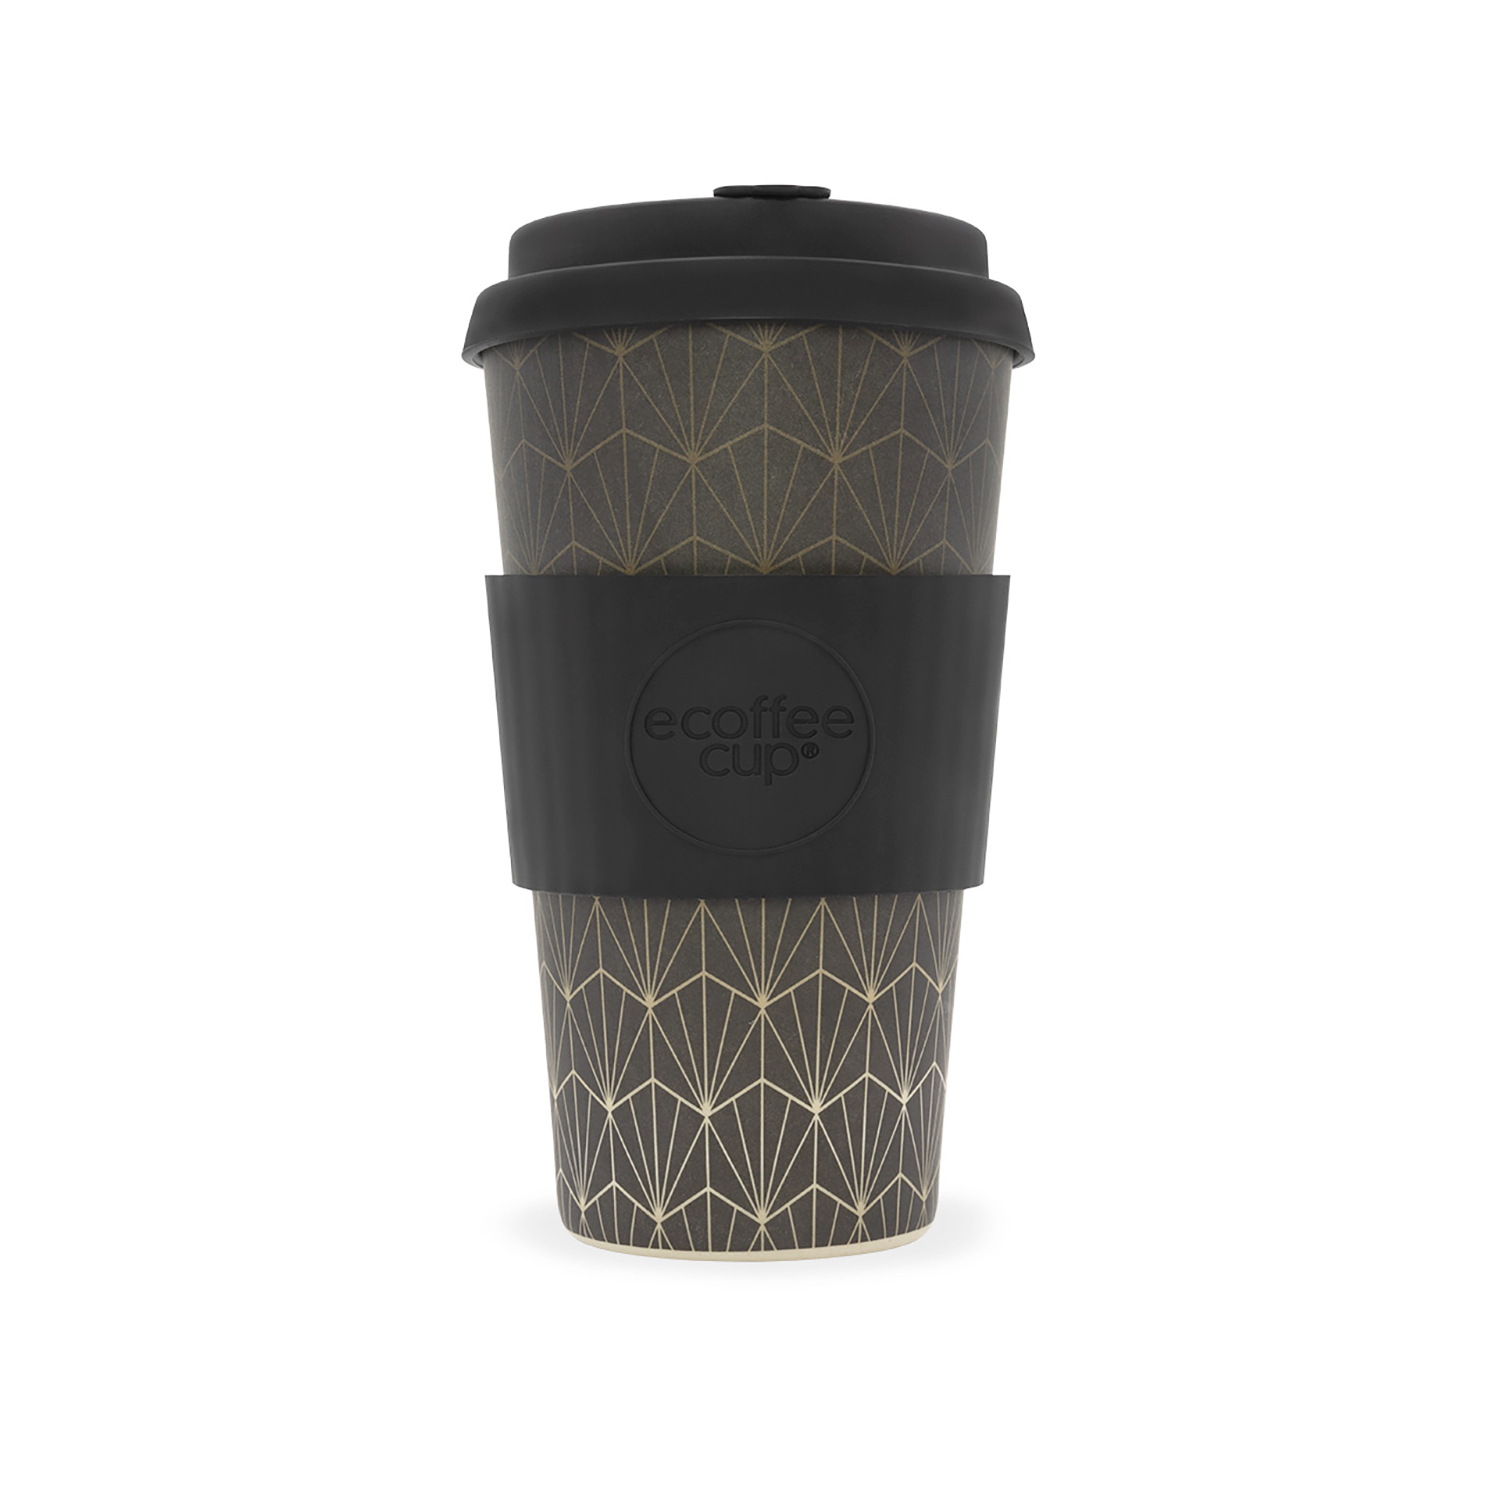 Domestic disposable cups or glasses or lids Ecoffee Eco 16oz Grand Rex Cup Ref 0303026